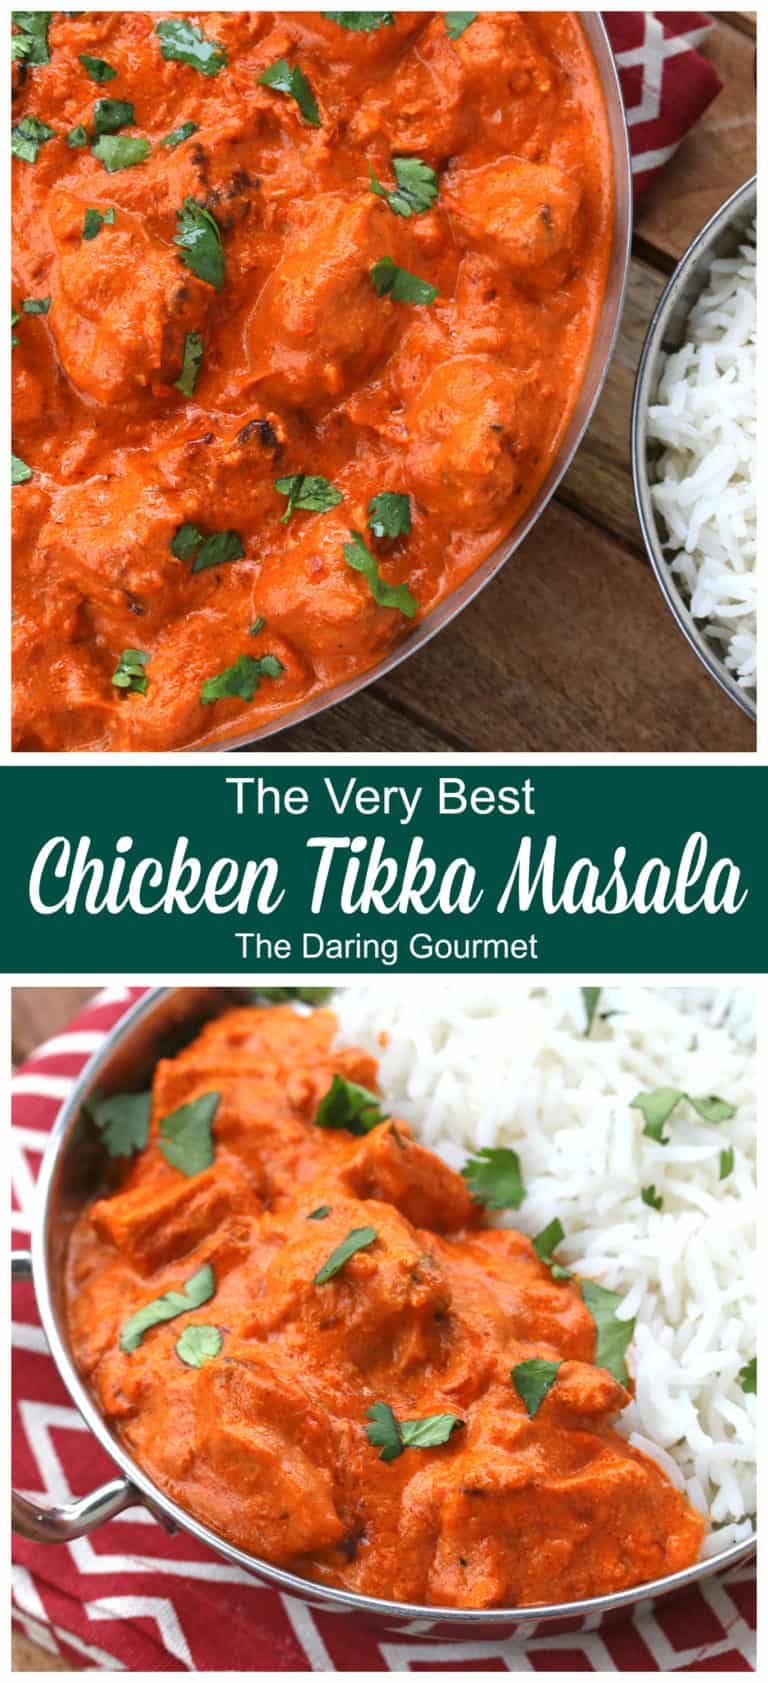 Chicken Tikka Masala The Daring Gourmet